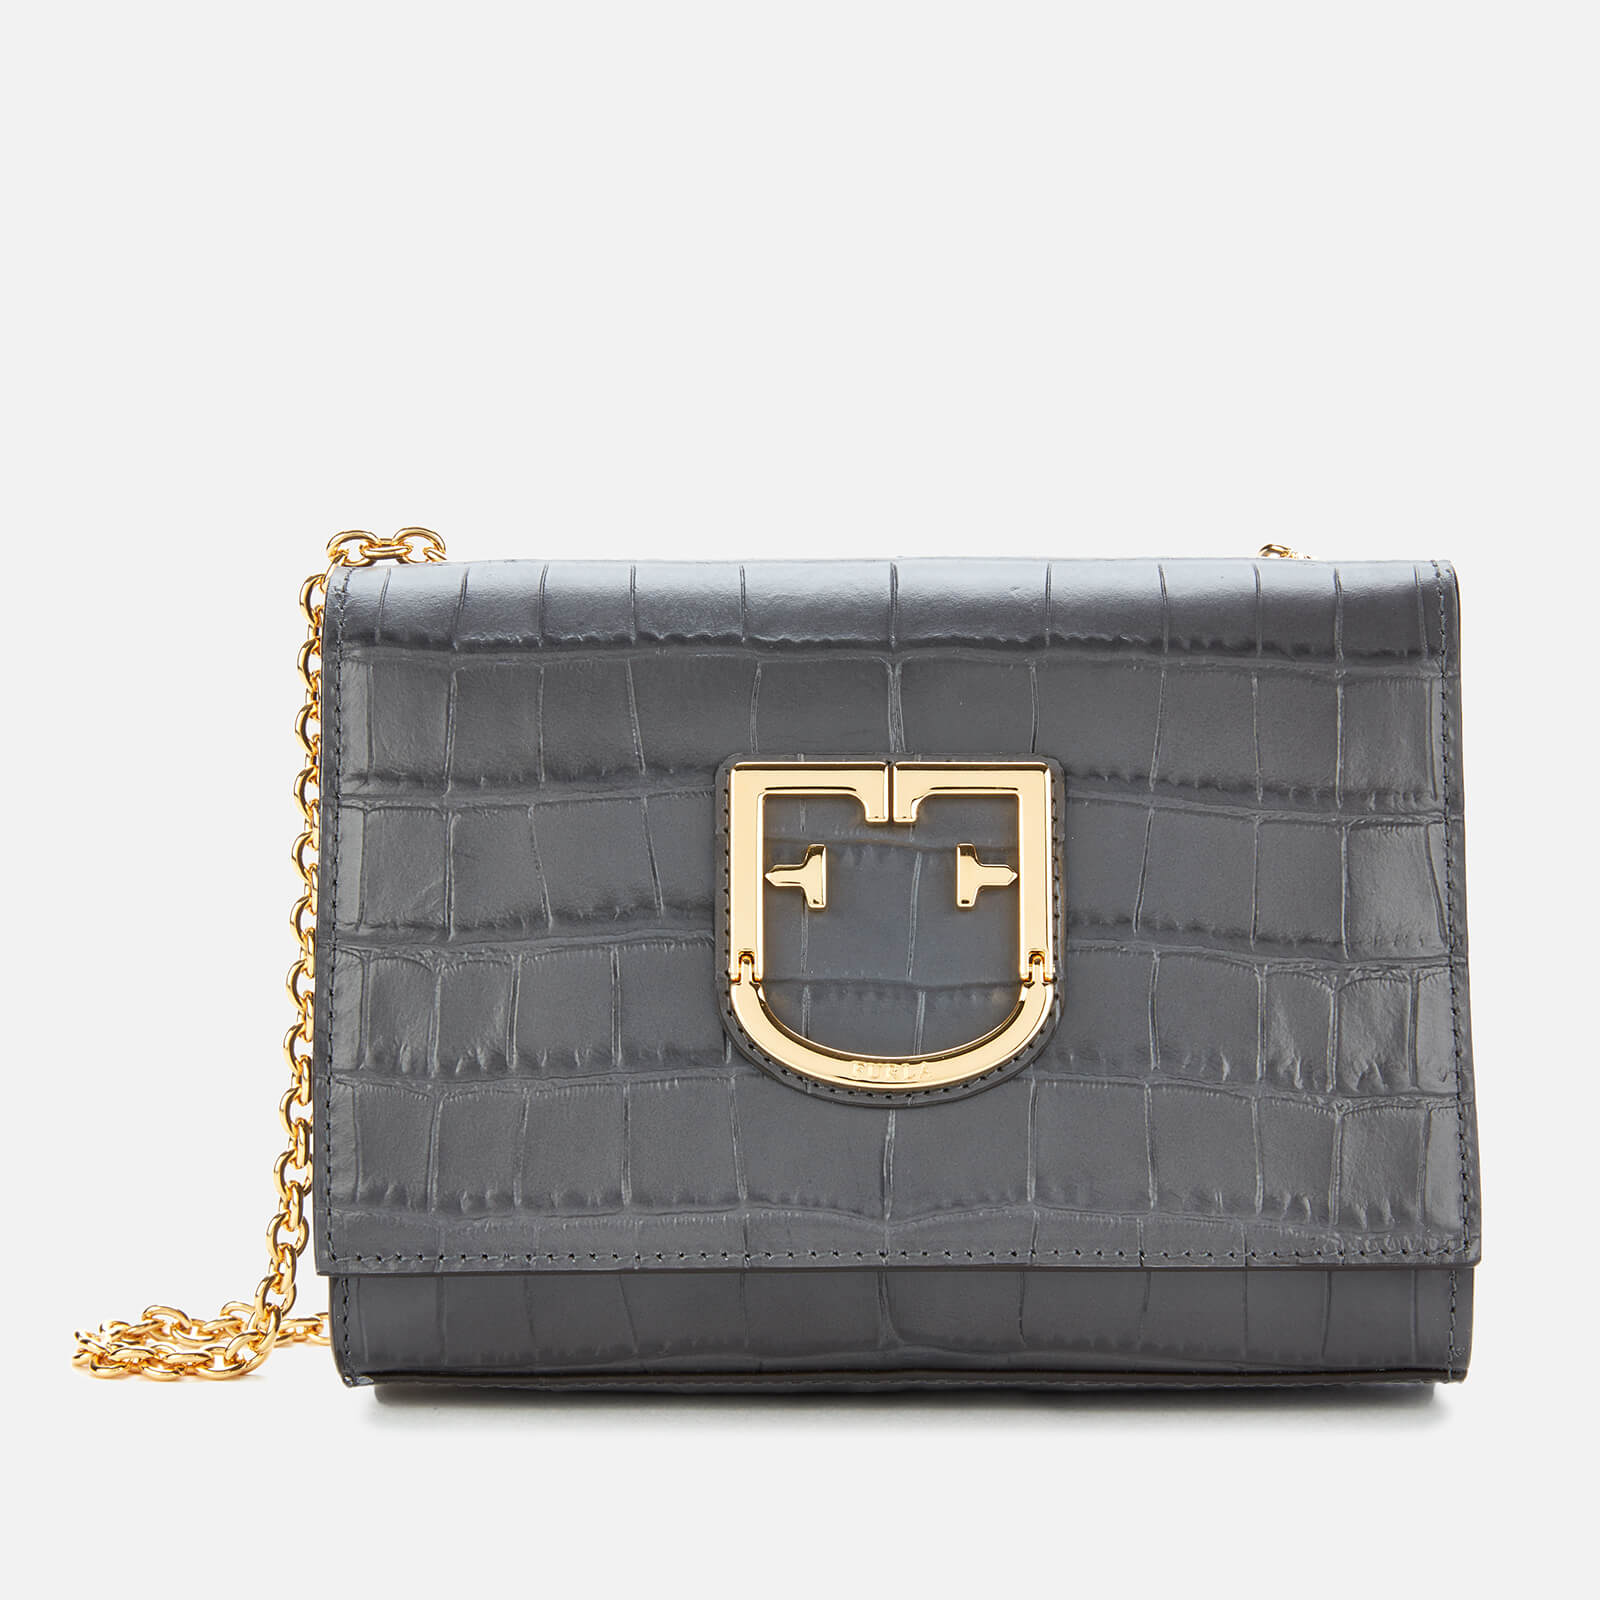 Furla Women's Furla Viva Mini Pochette Bag - Grey